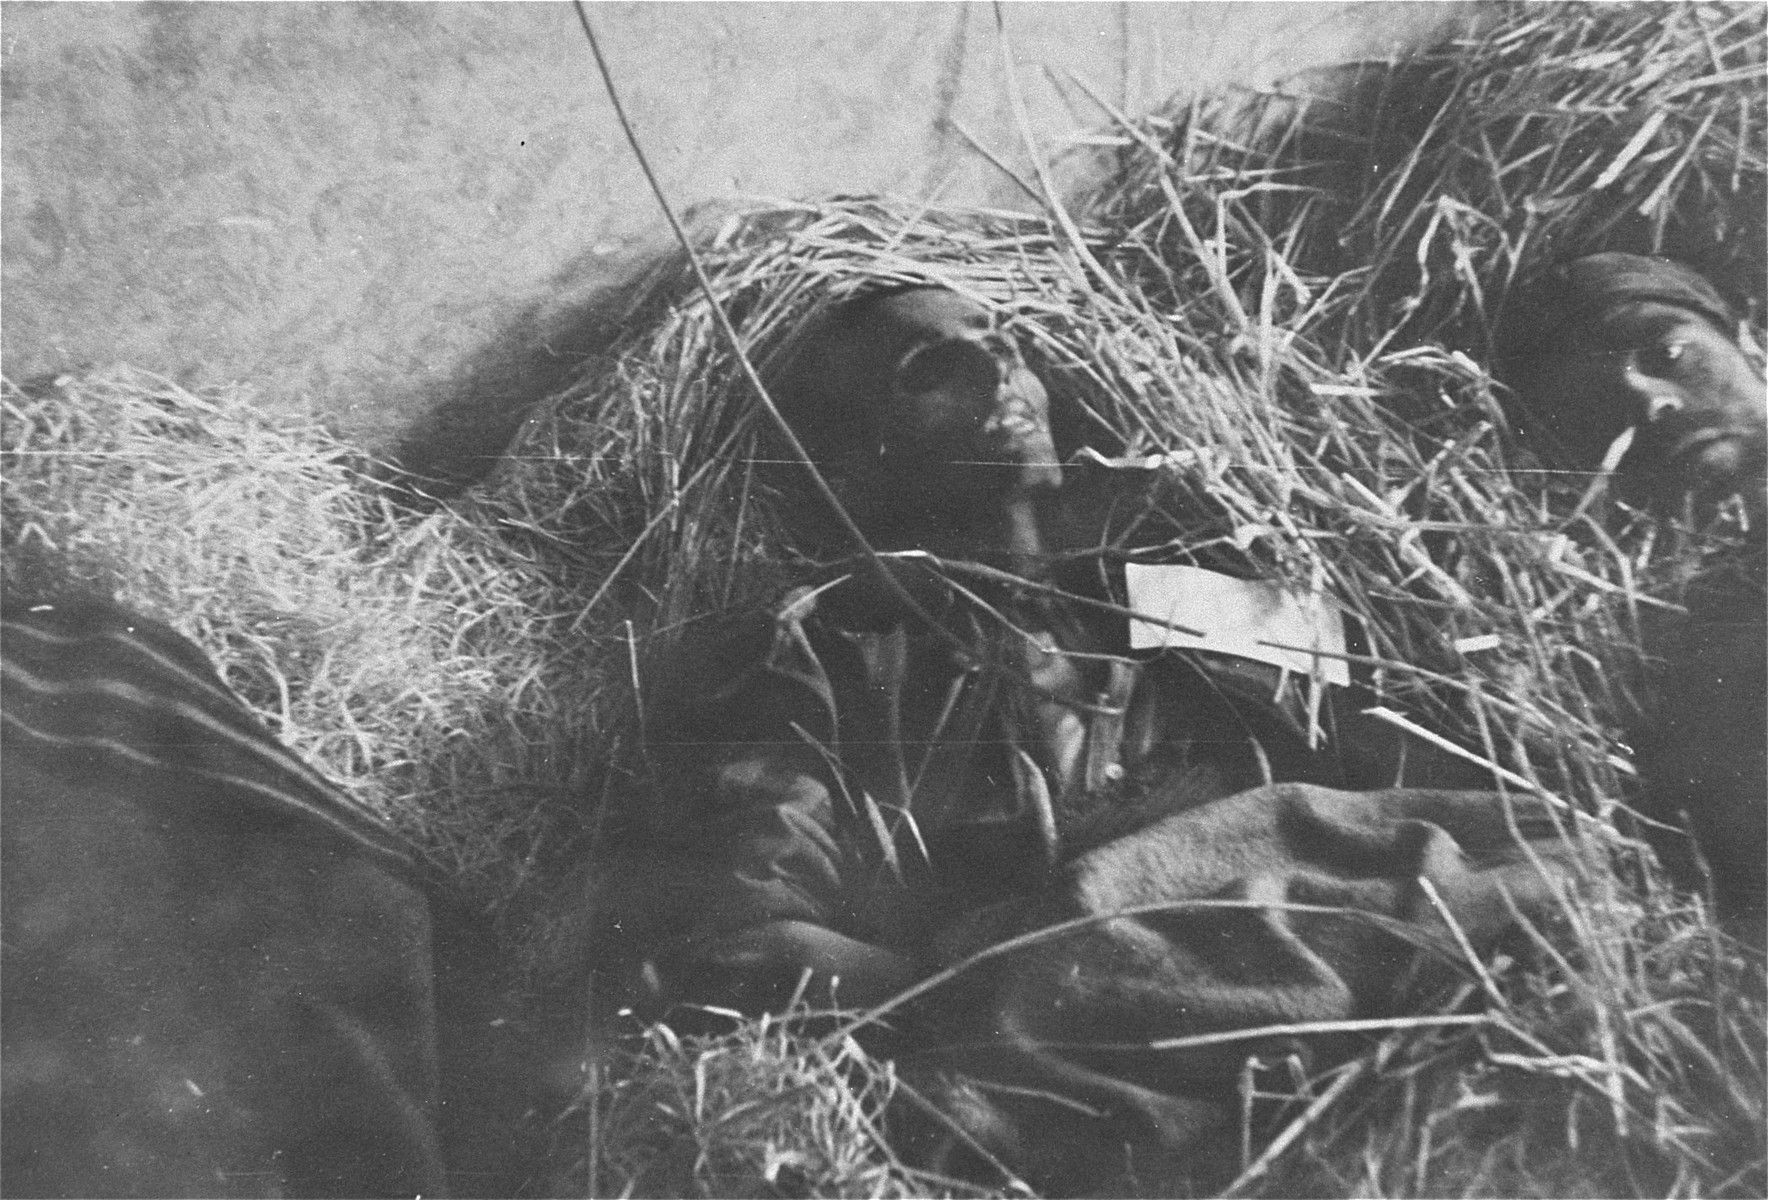 A survivor in Woebbelin lies next to a dead man in what may be an infirmary.